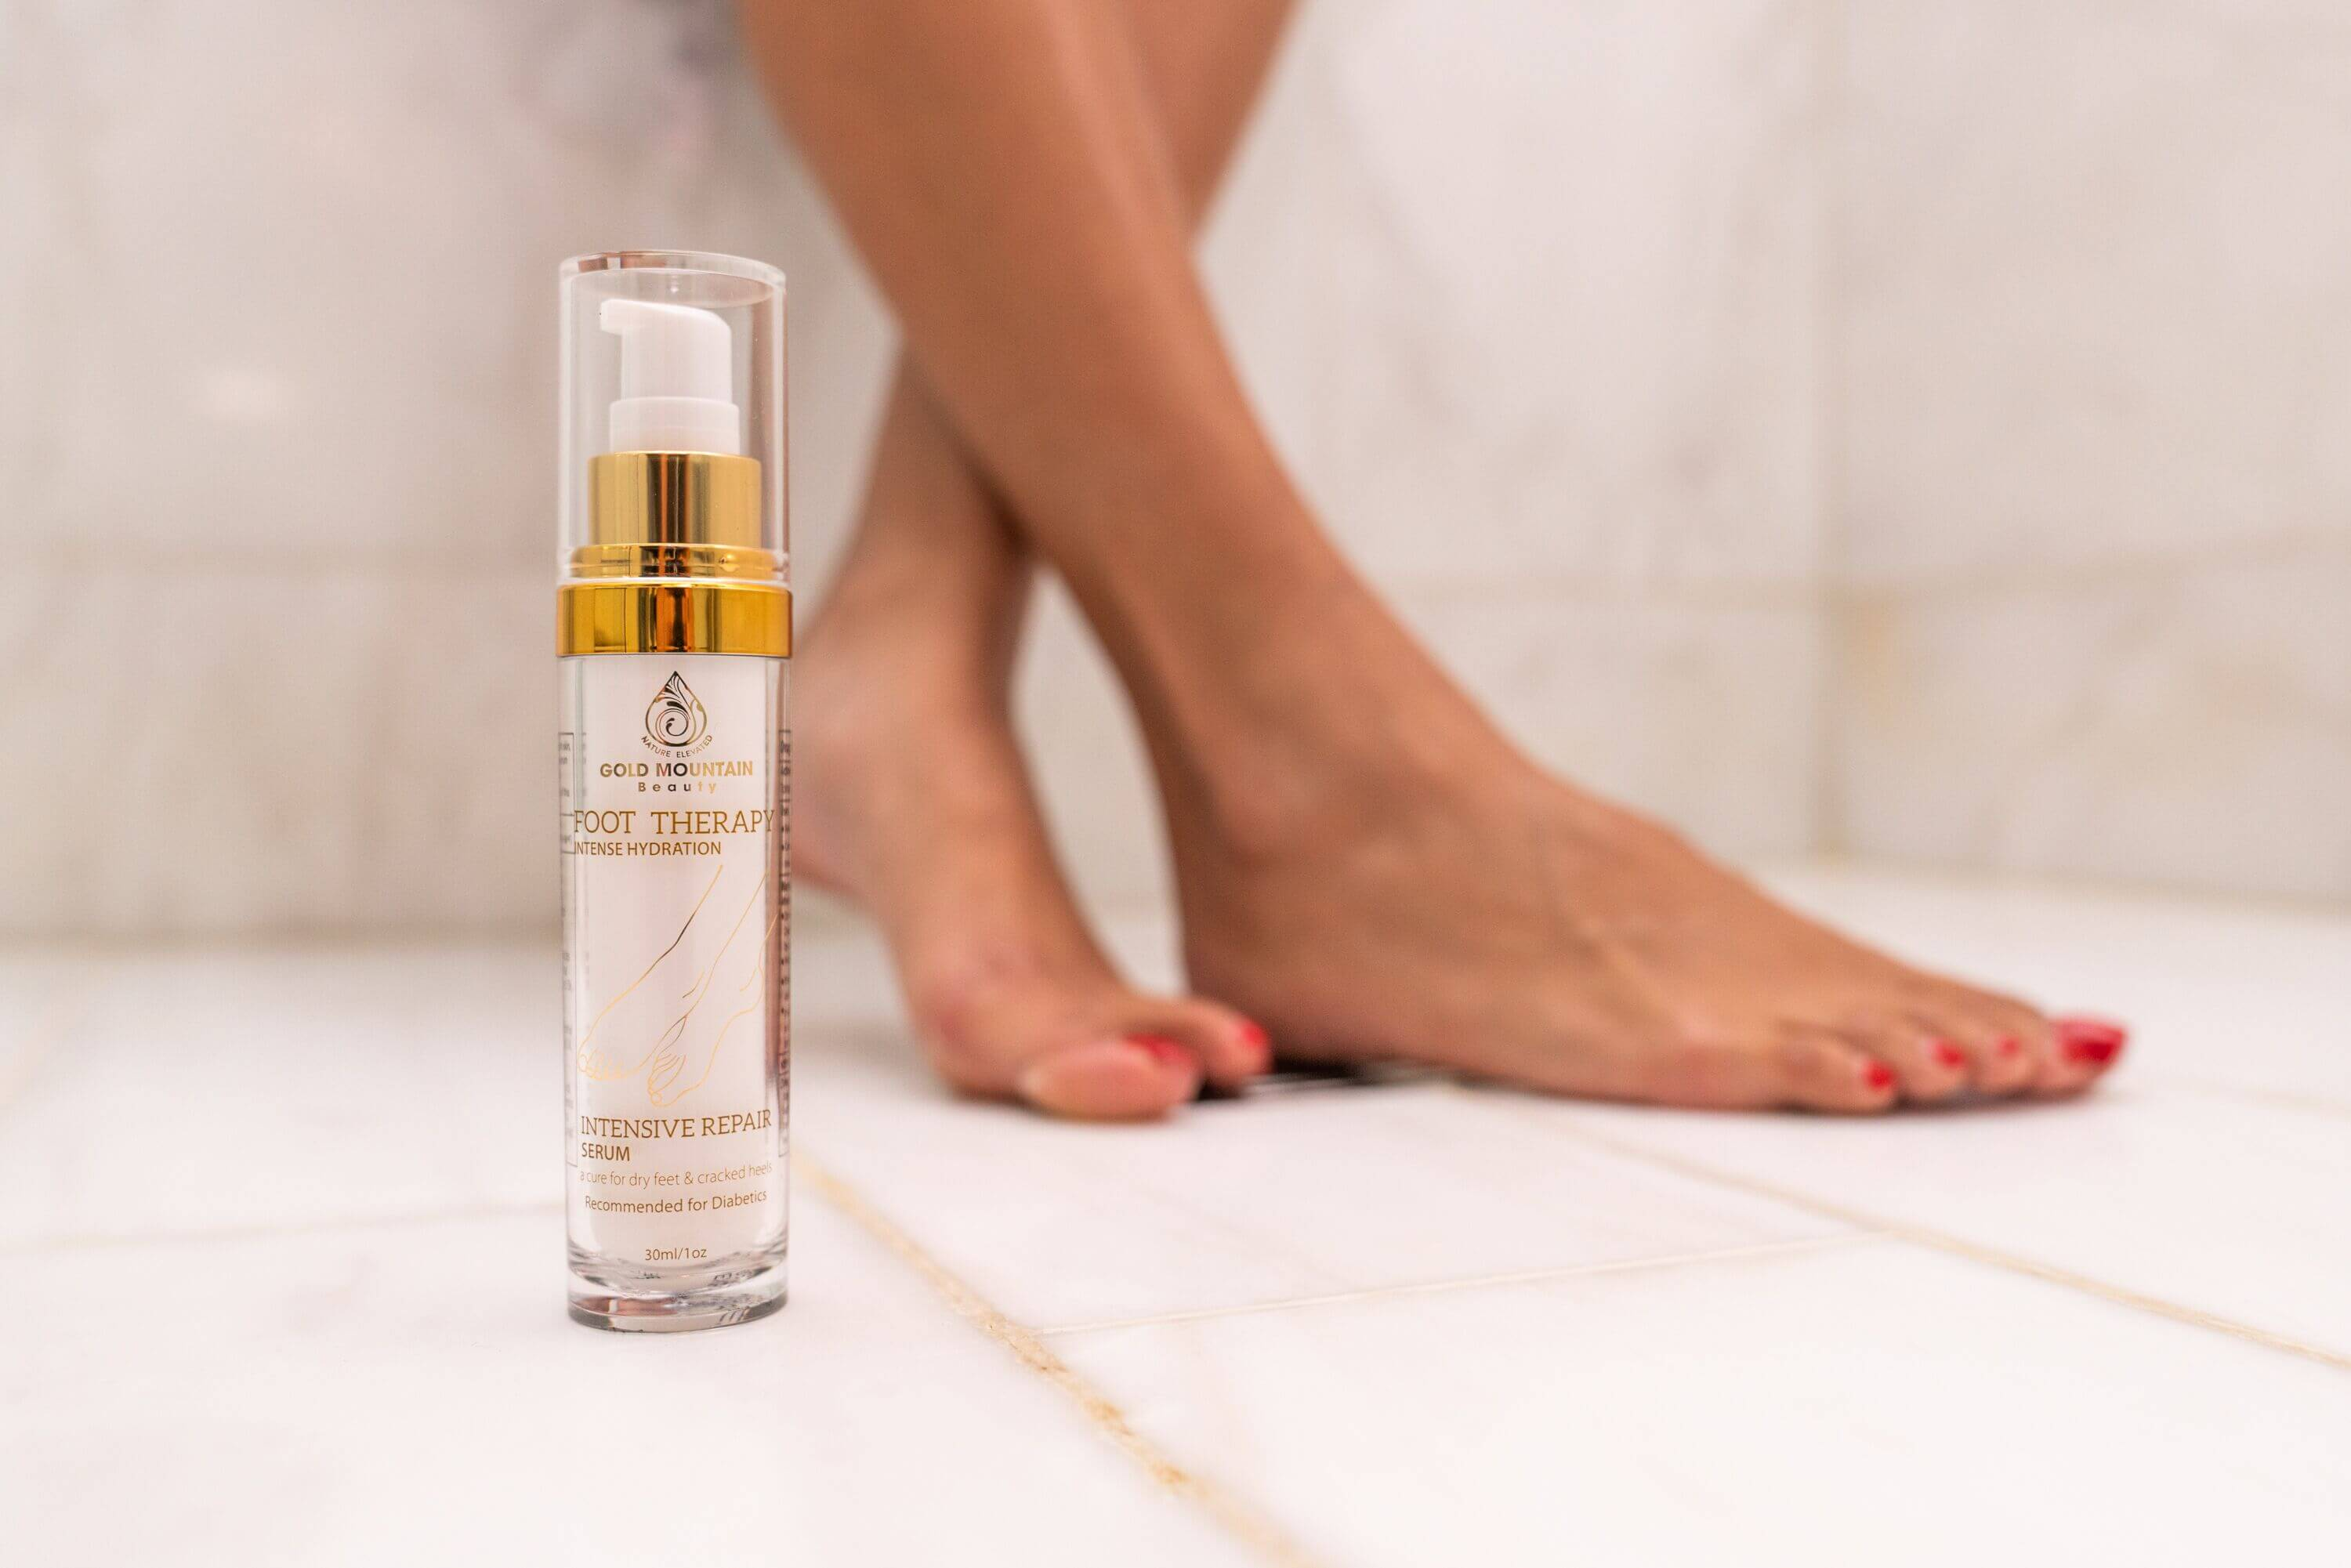 Moisturize Regularly With Foot Cream